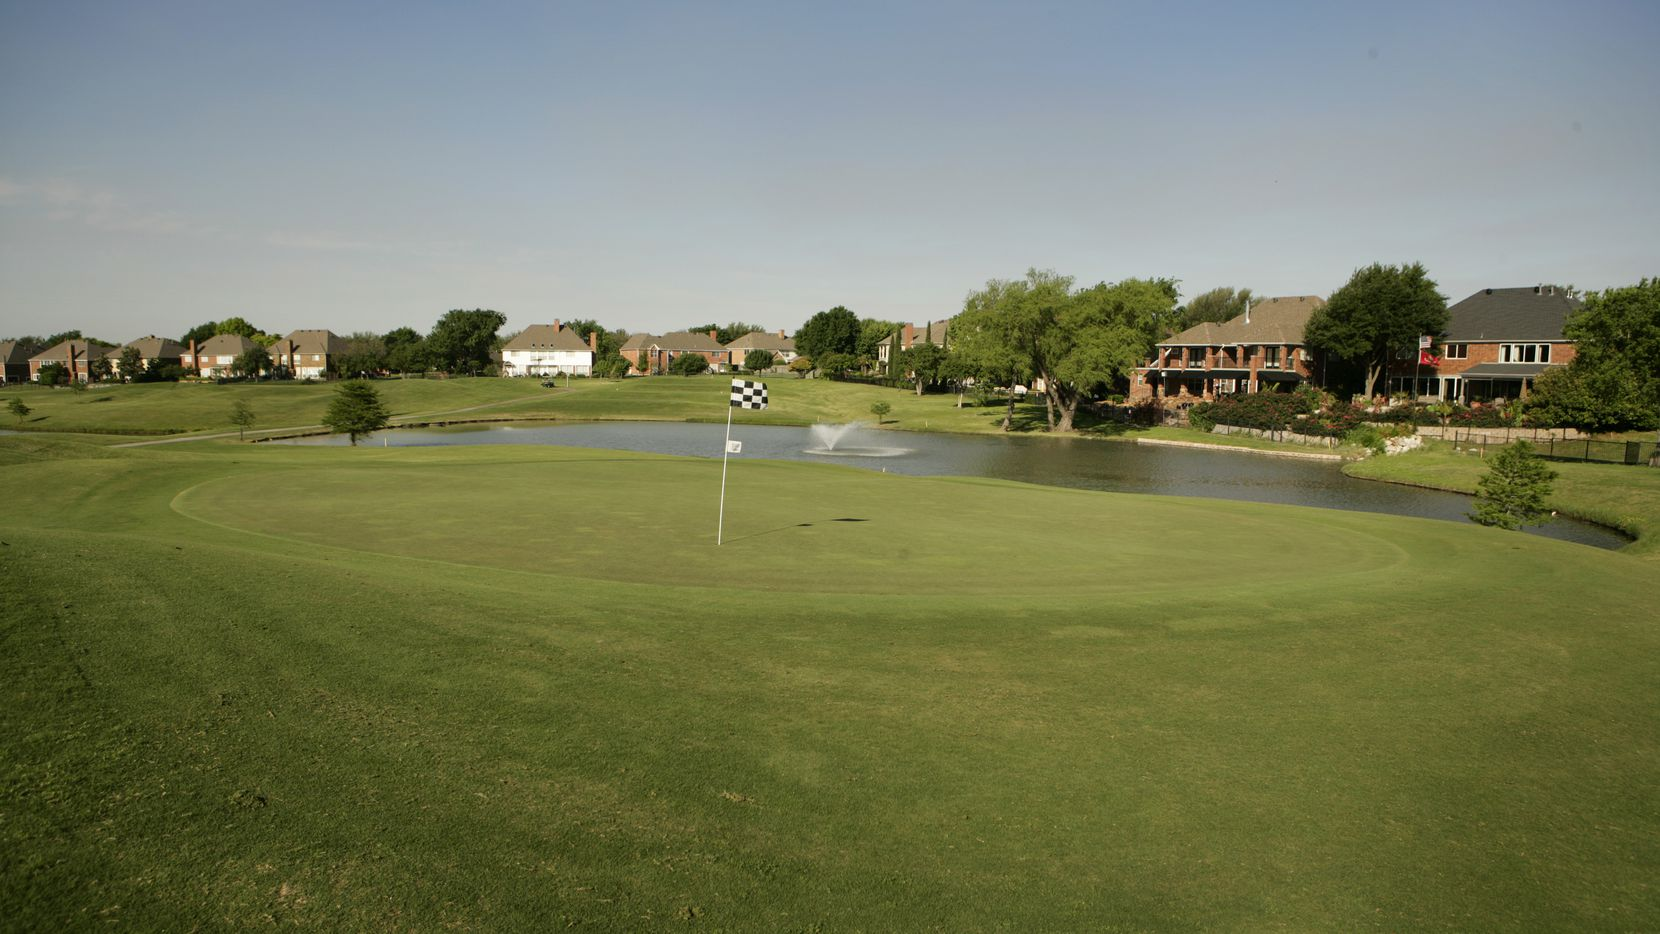 File photo of the Number 6 hole, par 3, on Course 1 at Sherrill Park Golf Course.